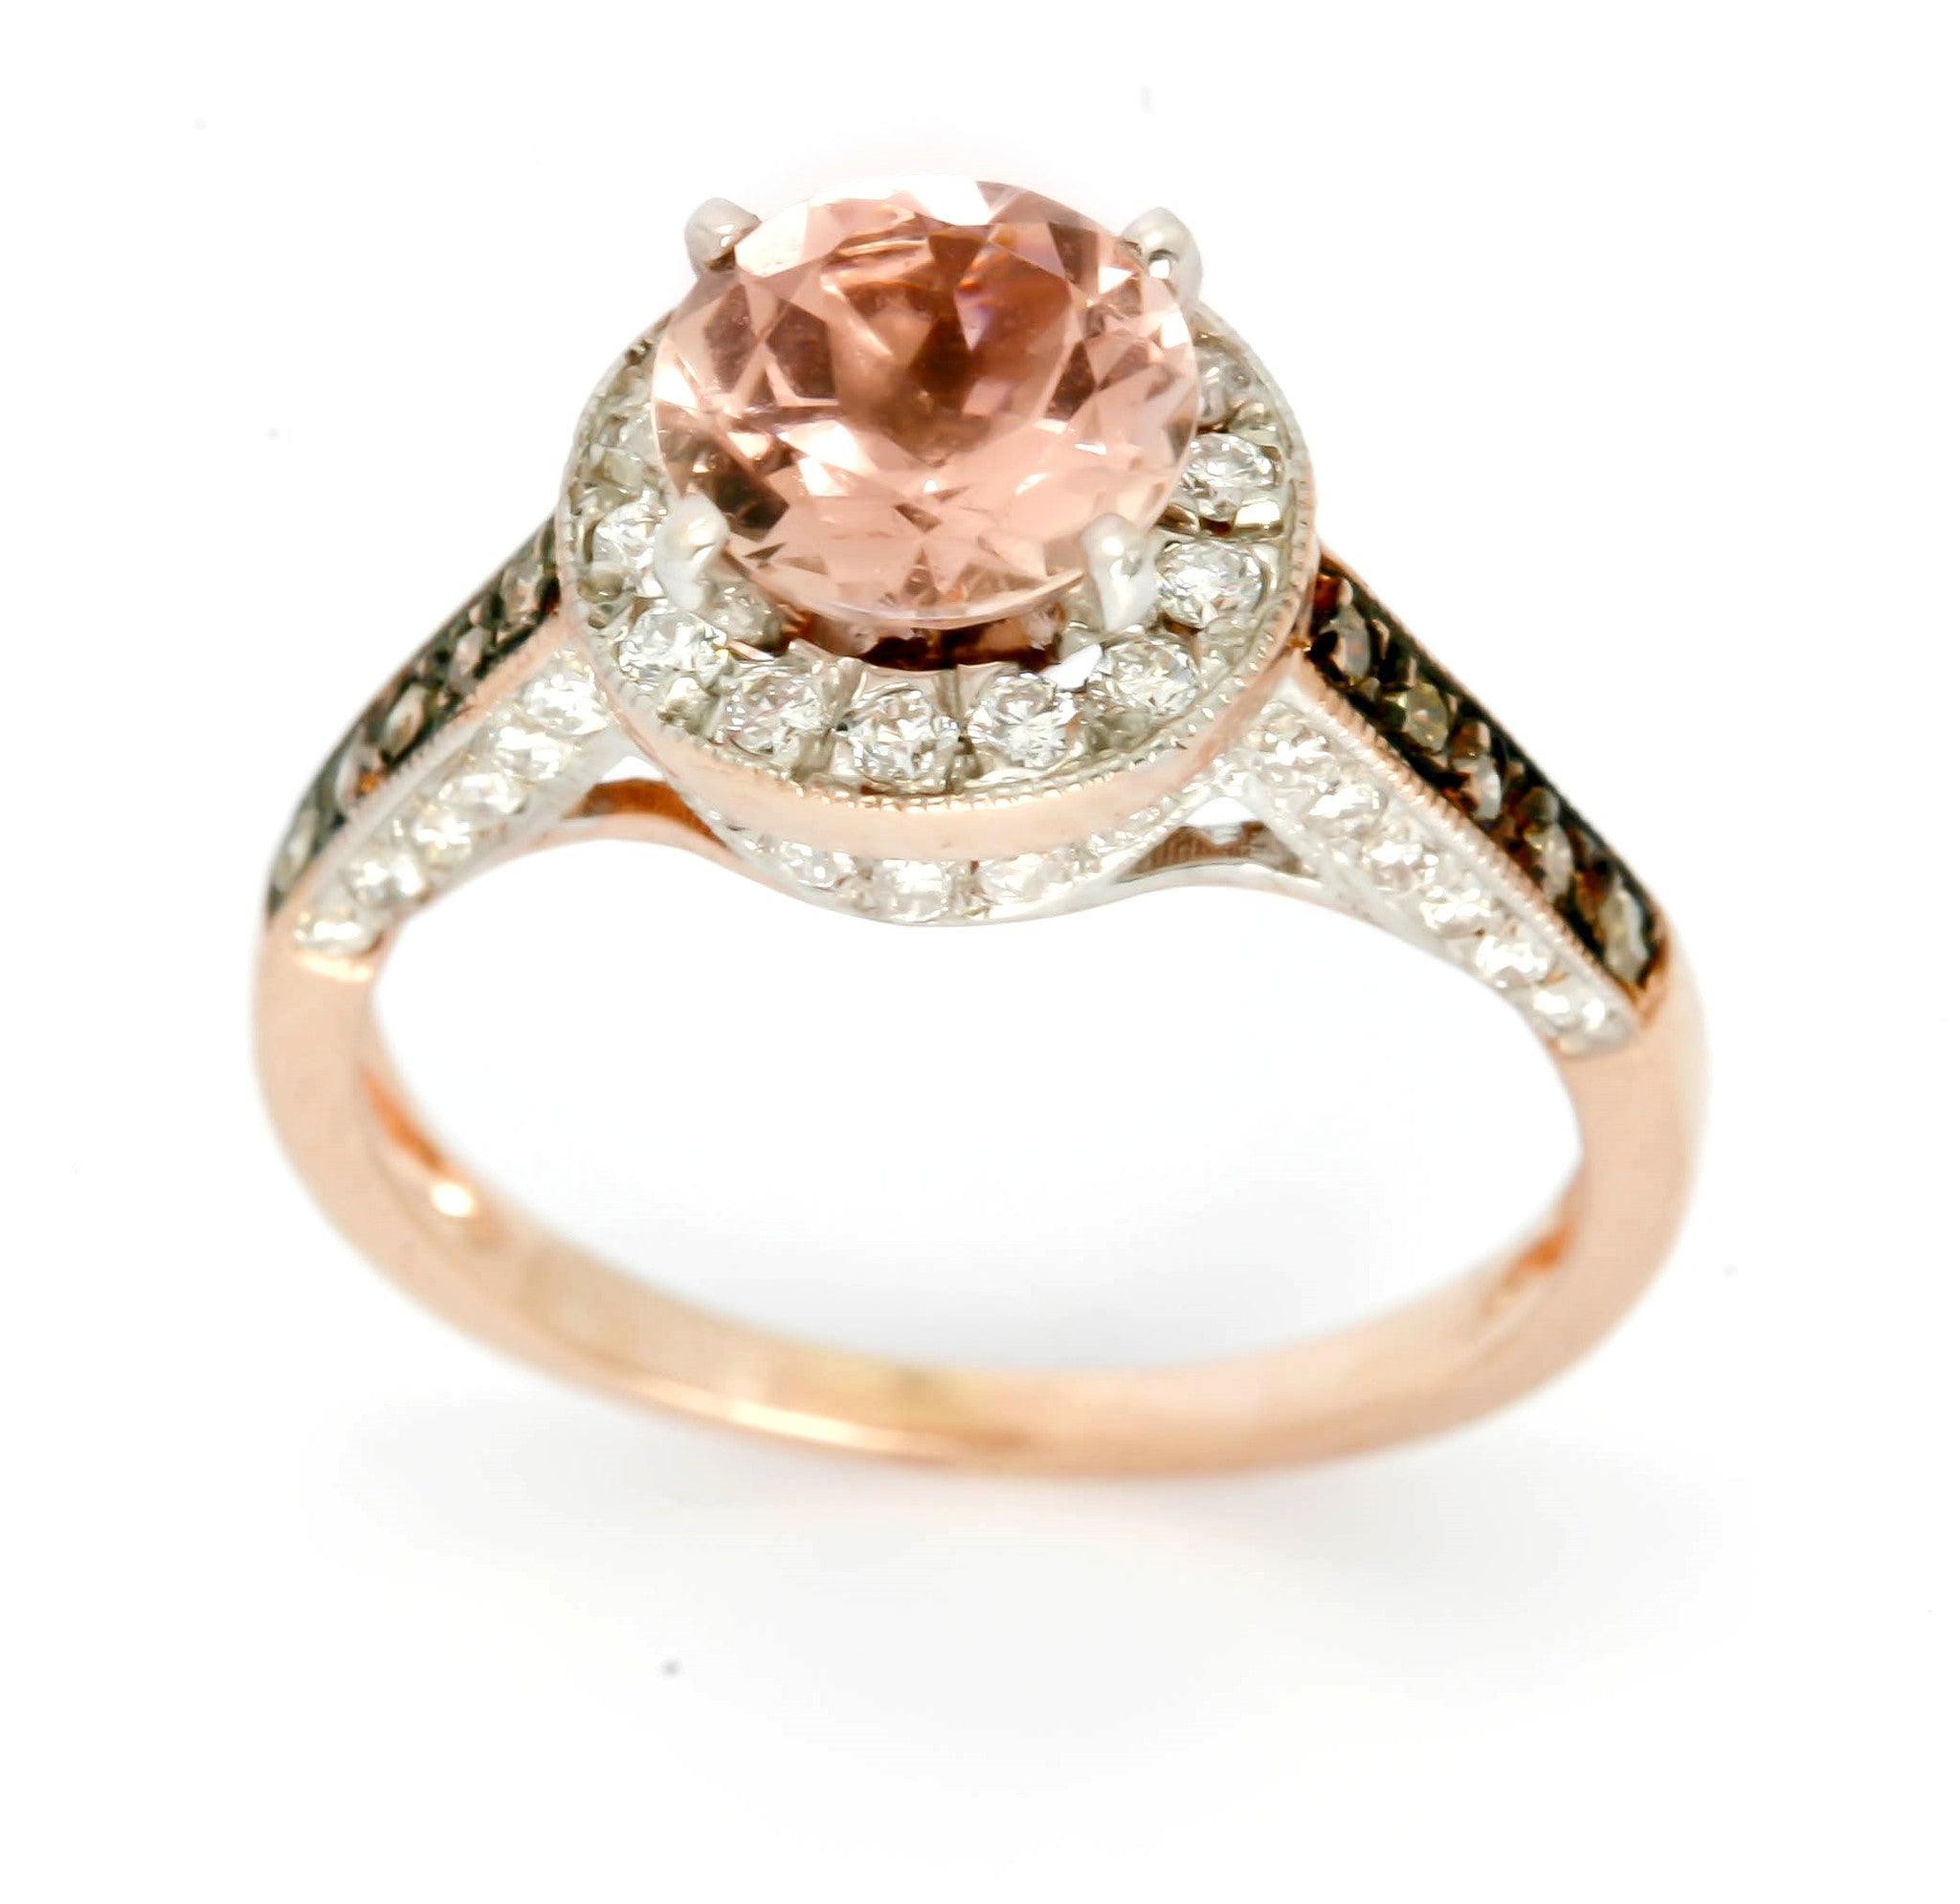 karat il rings fullxfull gallery rose under morganite shape diamond oval halo gold photo wedding listing